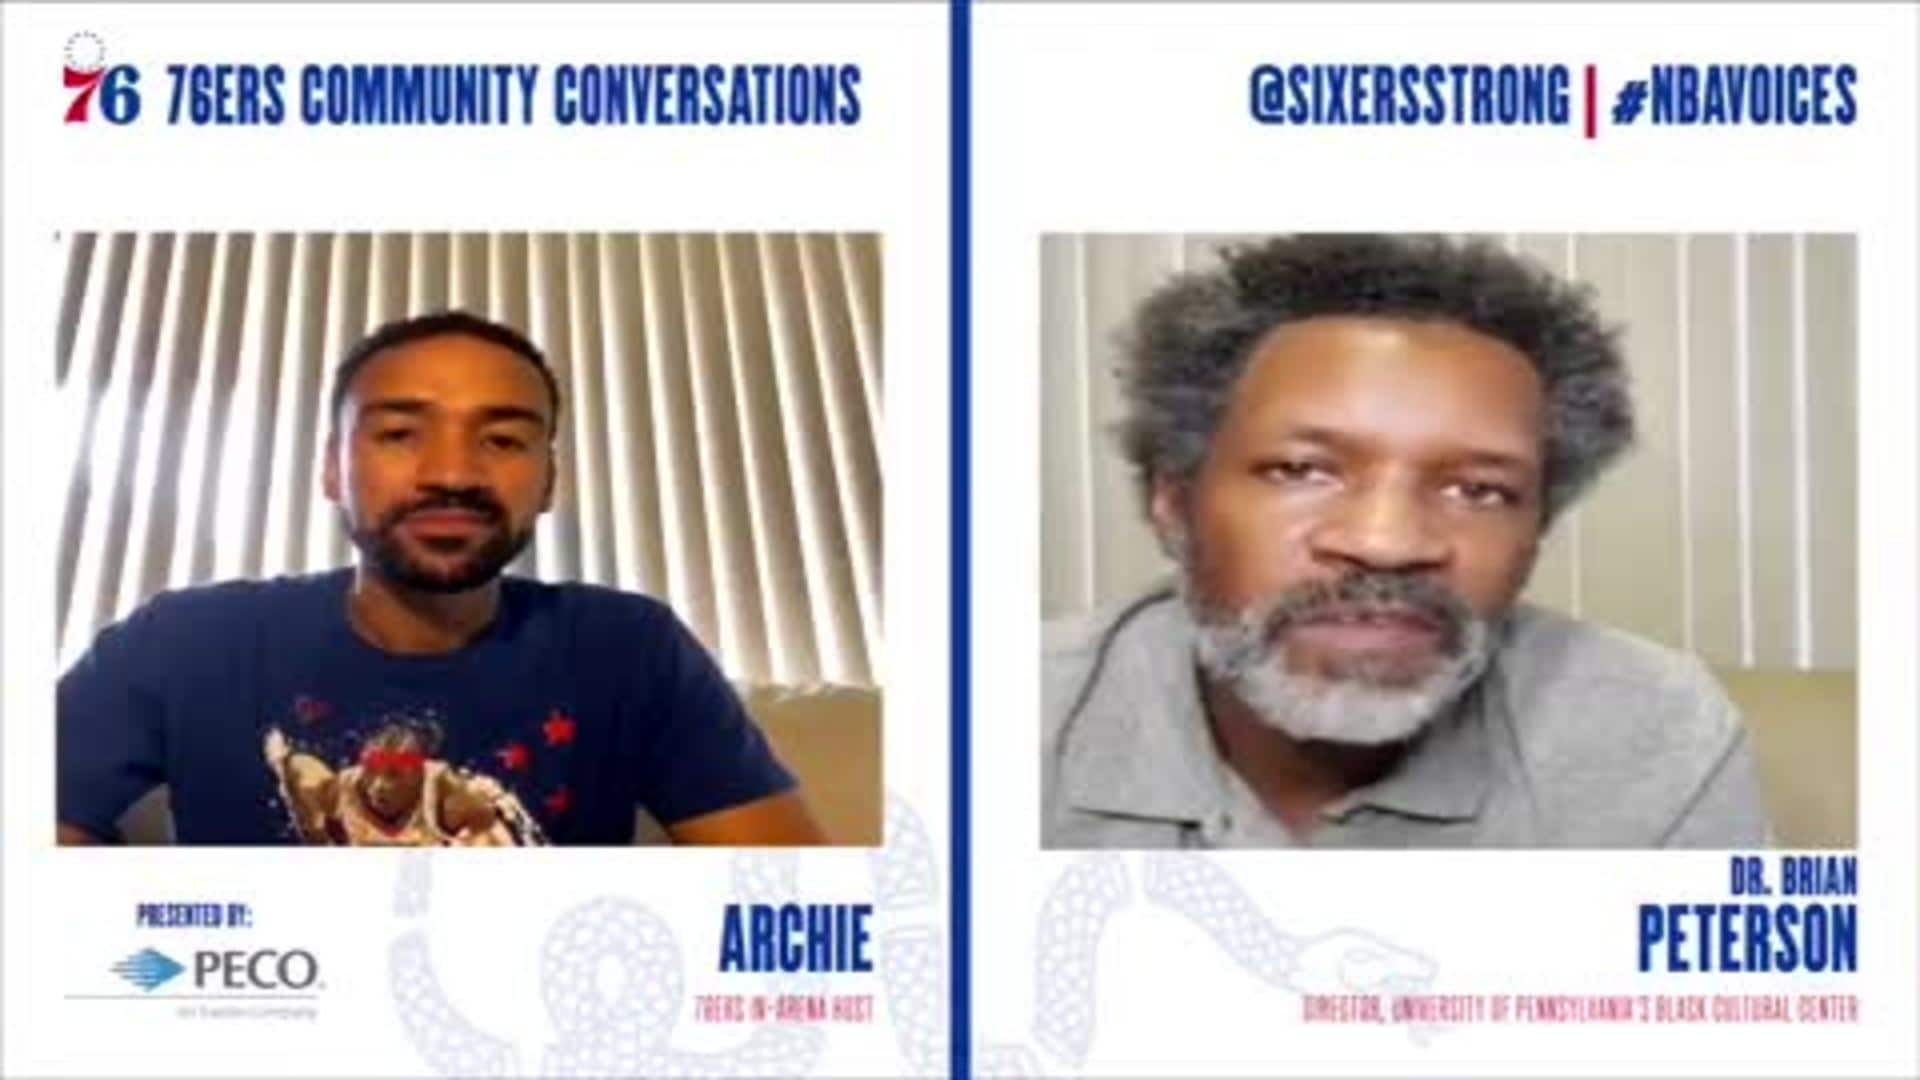 76ers Community Conversations | Succeeding as First Generation College Student